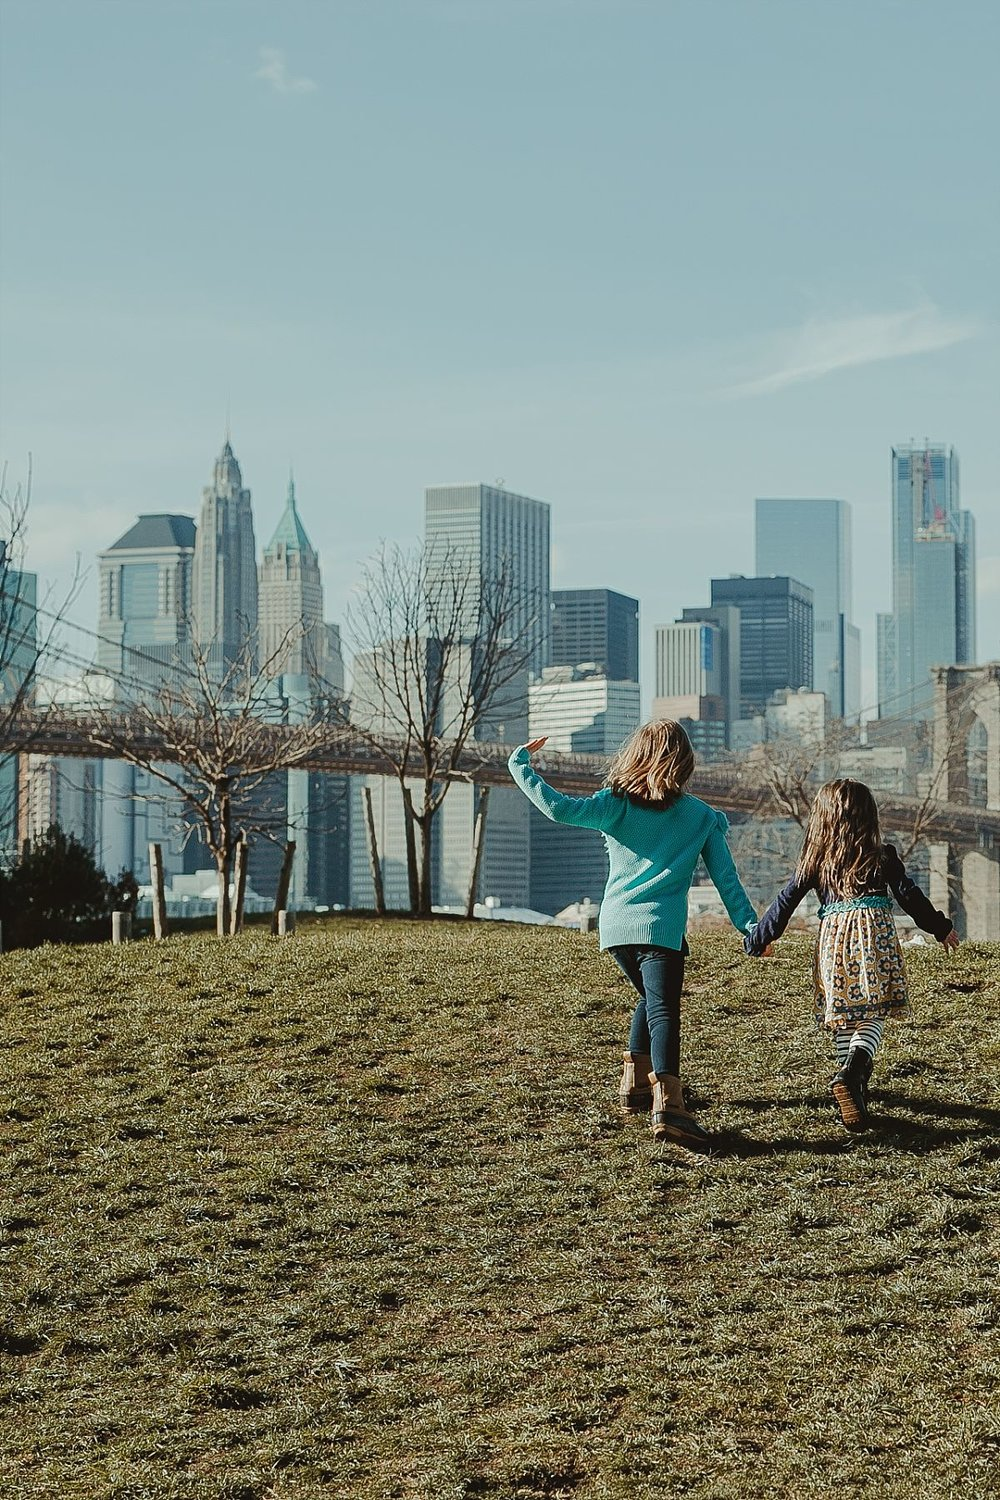 sisters run hand-in-hand along the green grass in playground in brooklyn with beautiful views of the nyc skyline in the background. image by krystil mcdowall photography